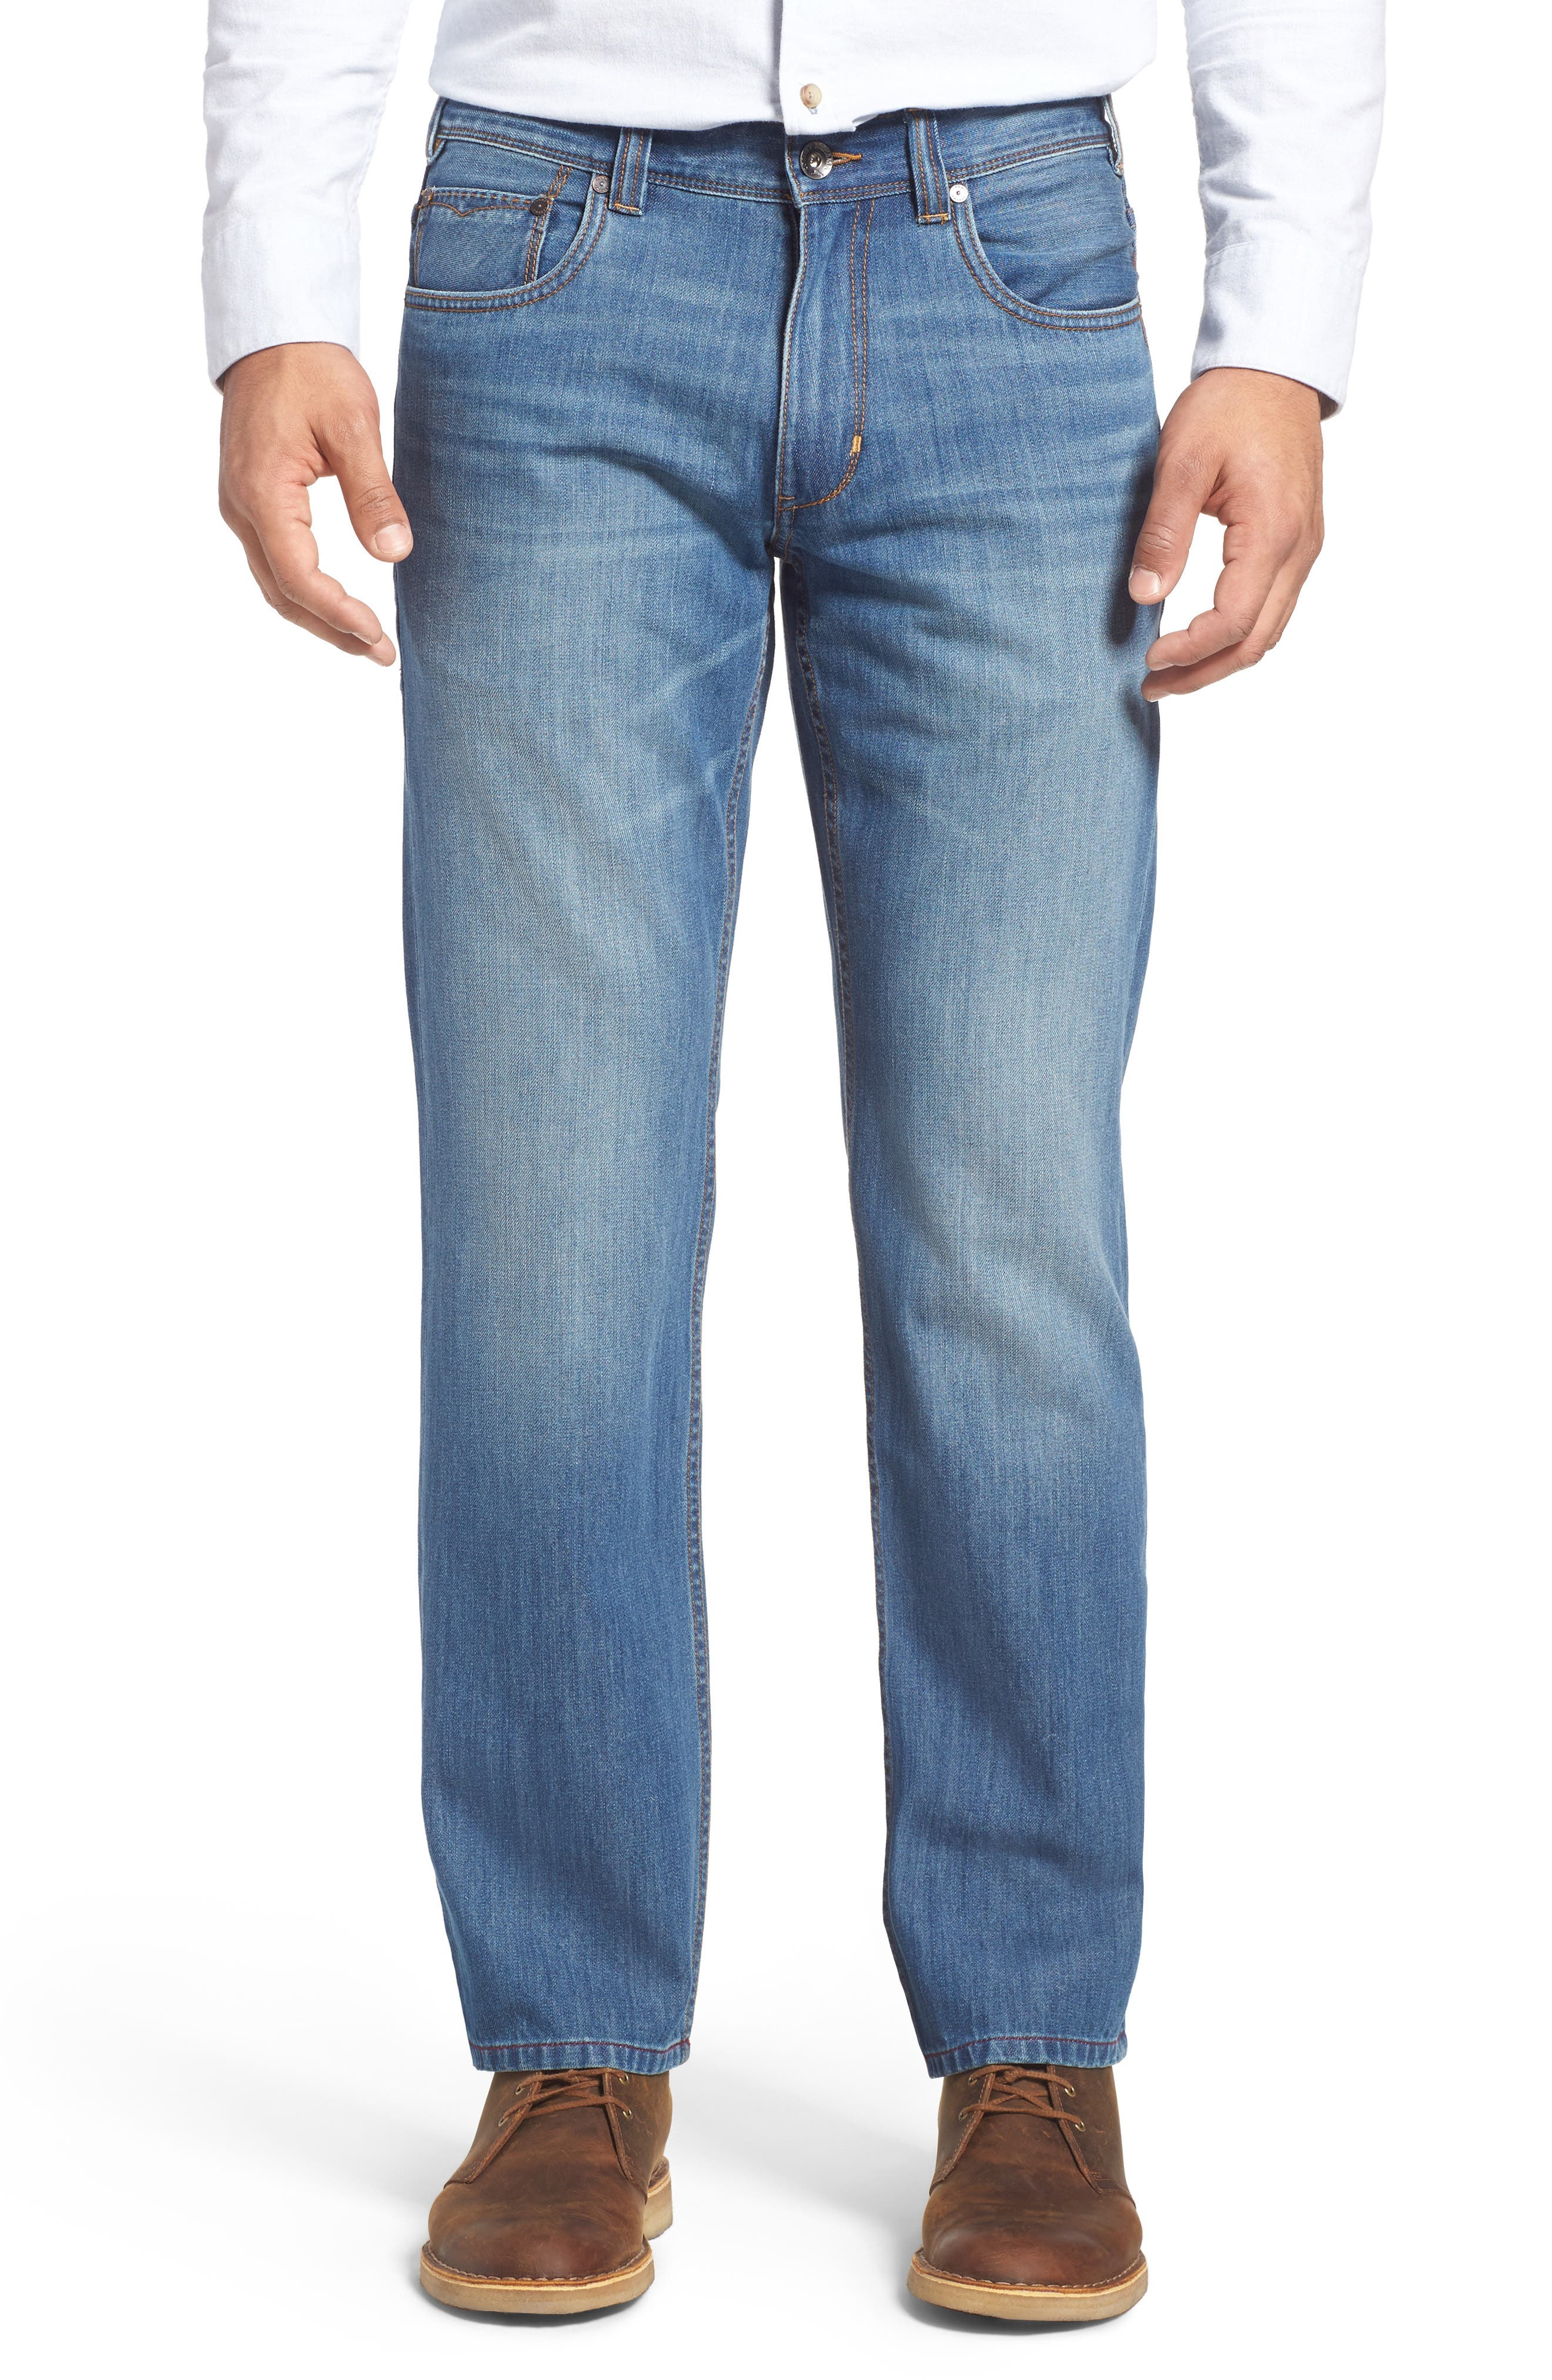 Barbados Straight Leg Jeans,                             Main thumbnail 1, color,                             Light Indigo Wash